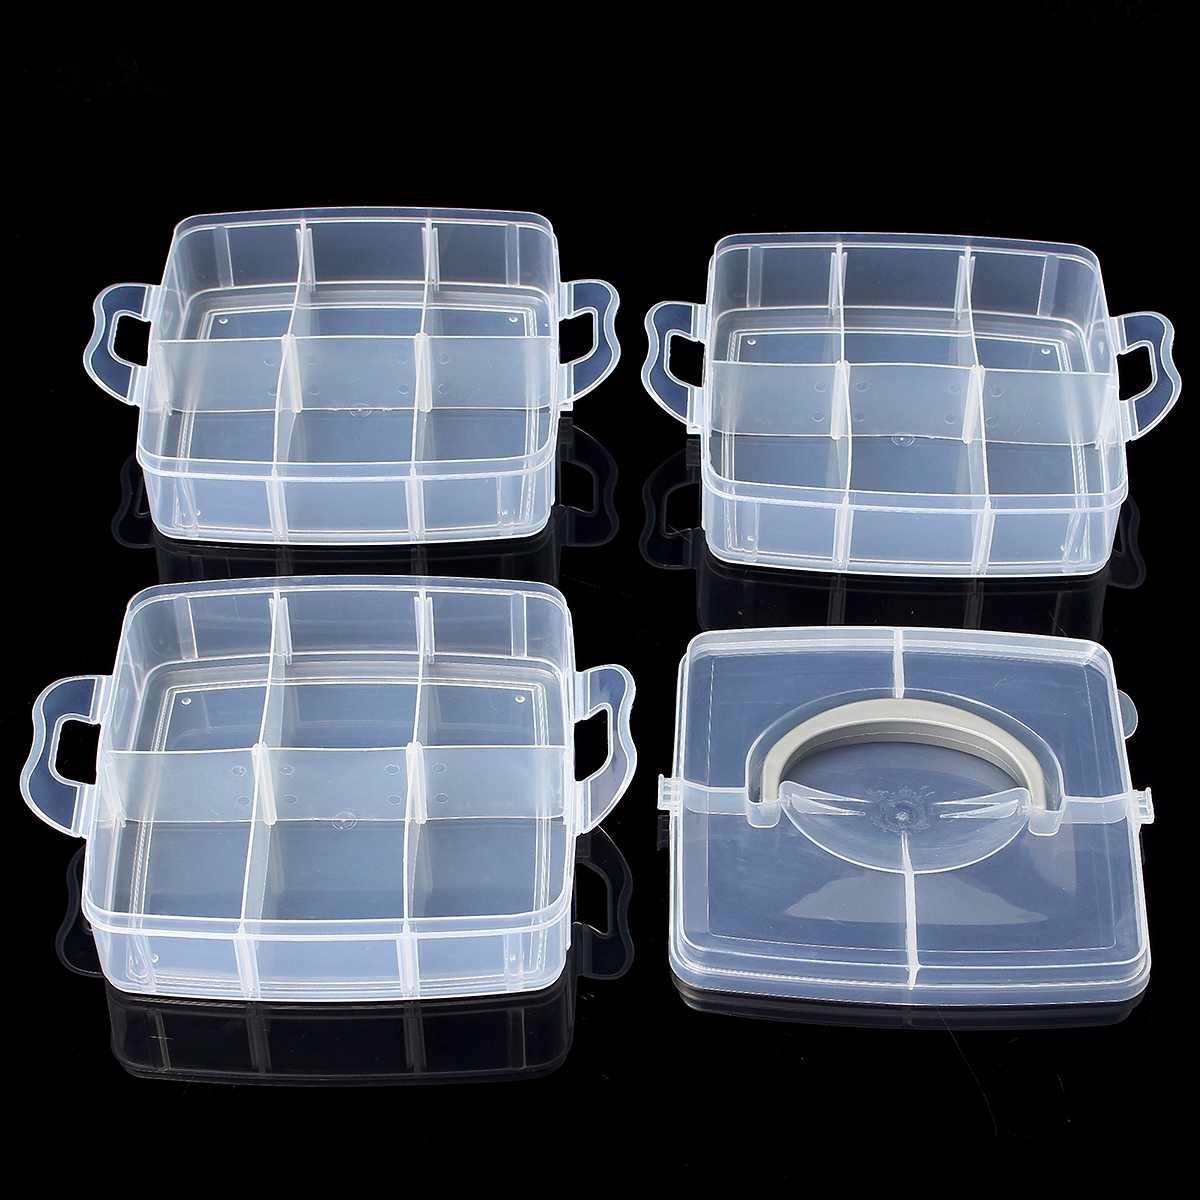 20 White Plastic Jewelry Beads Sorting Trays Storage Container Case For Craft